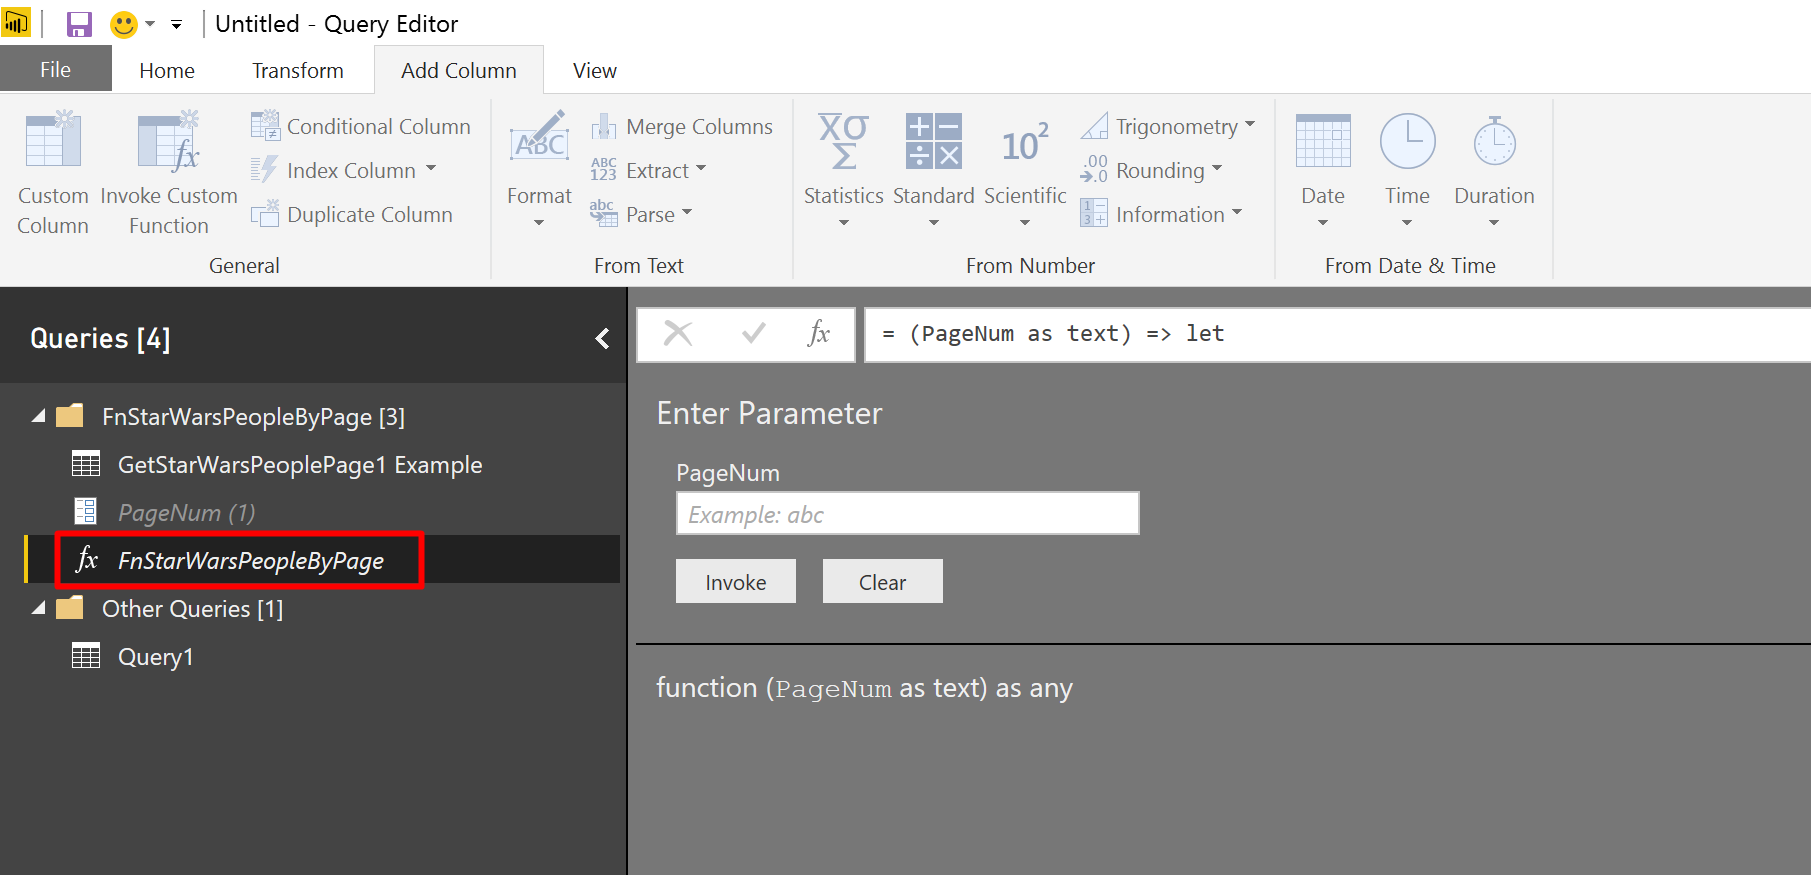 You are encouraged not to edit the function from Advanced Editor in Power BI. Instead, try editing the example. It will directly modify the function.